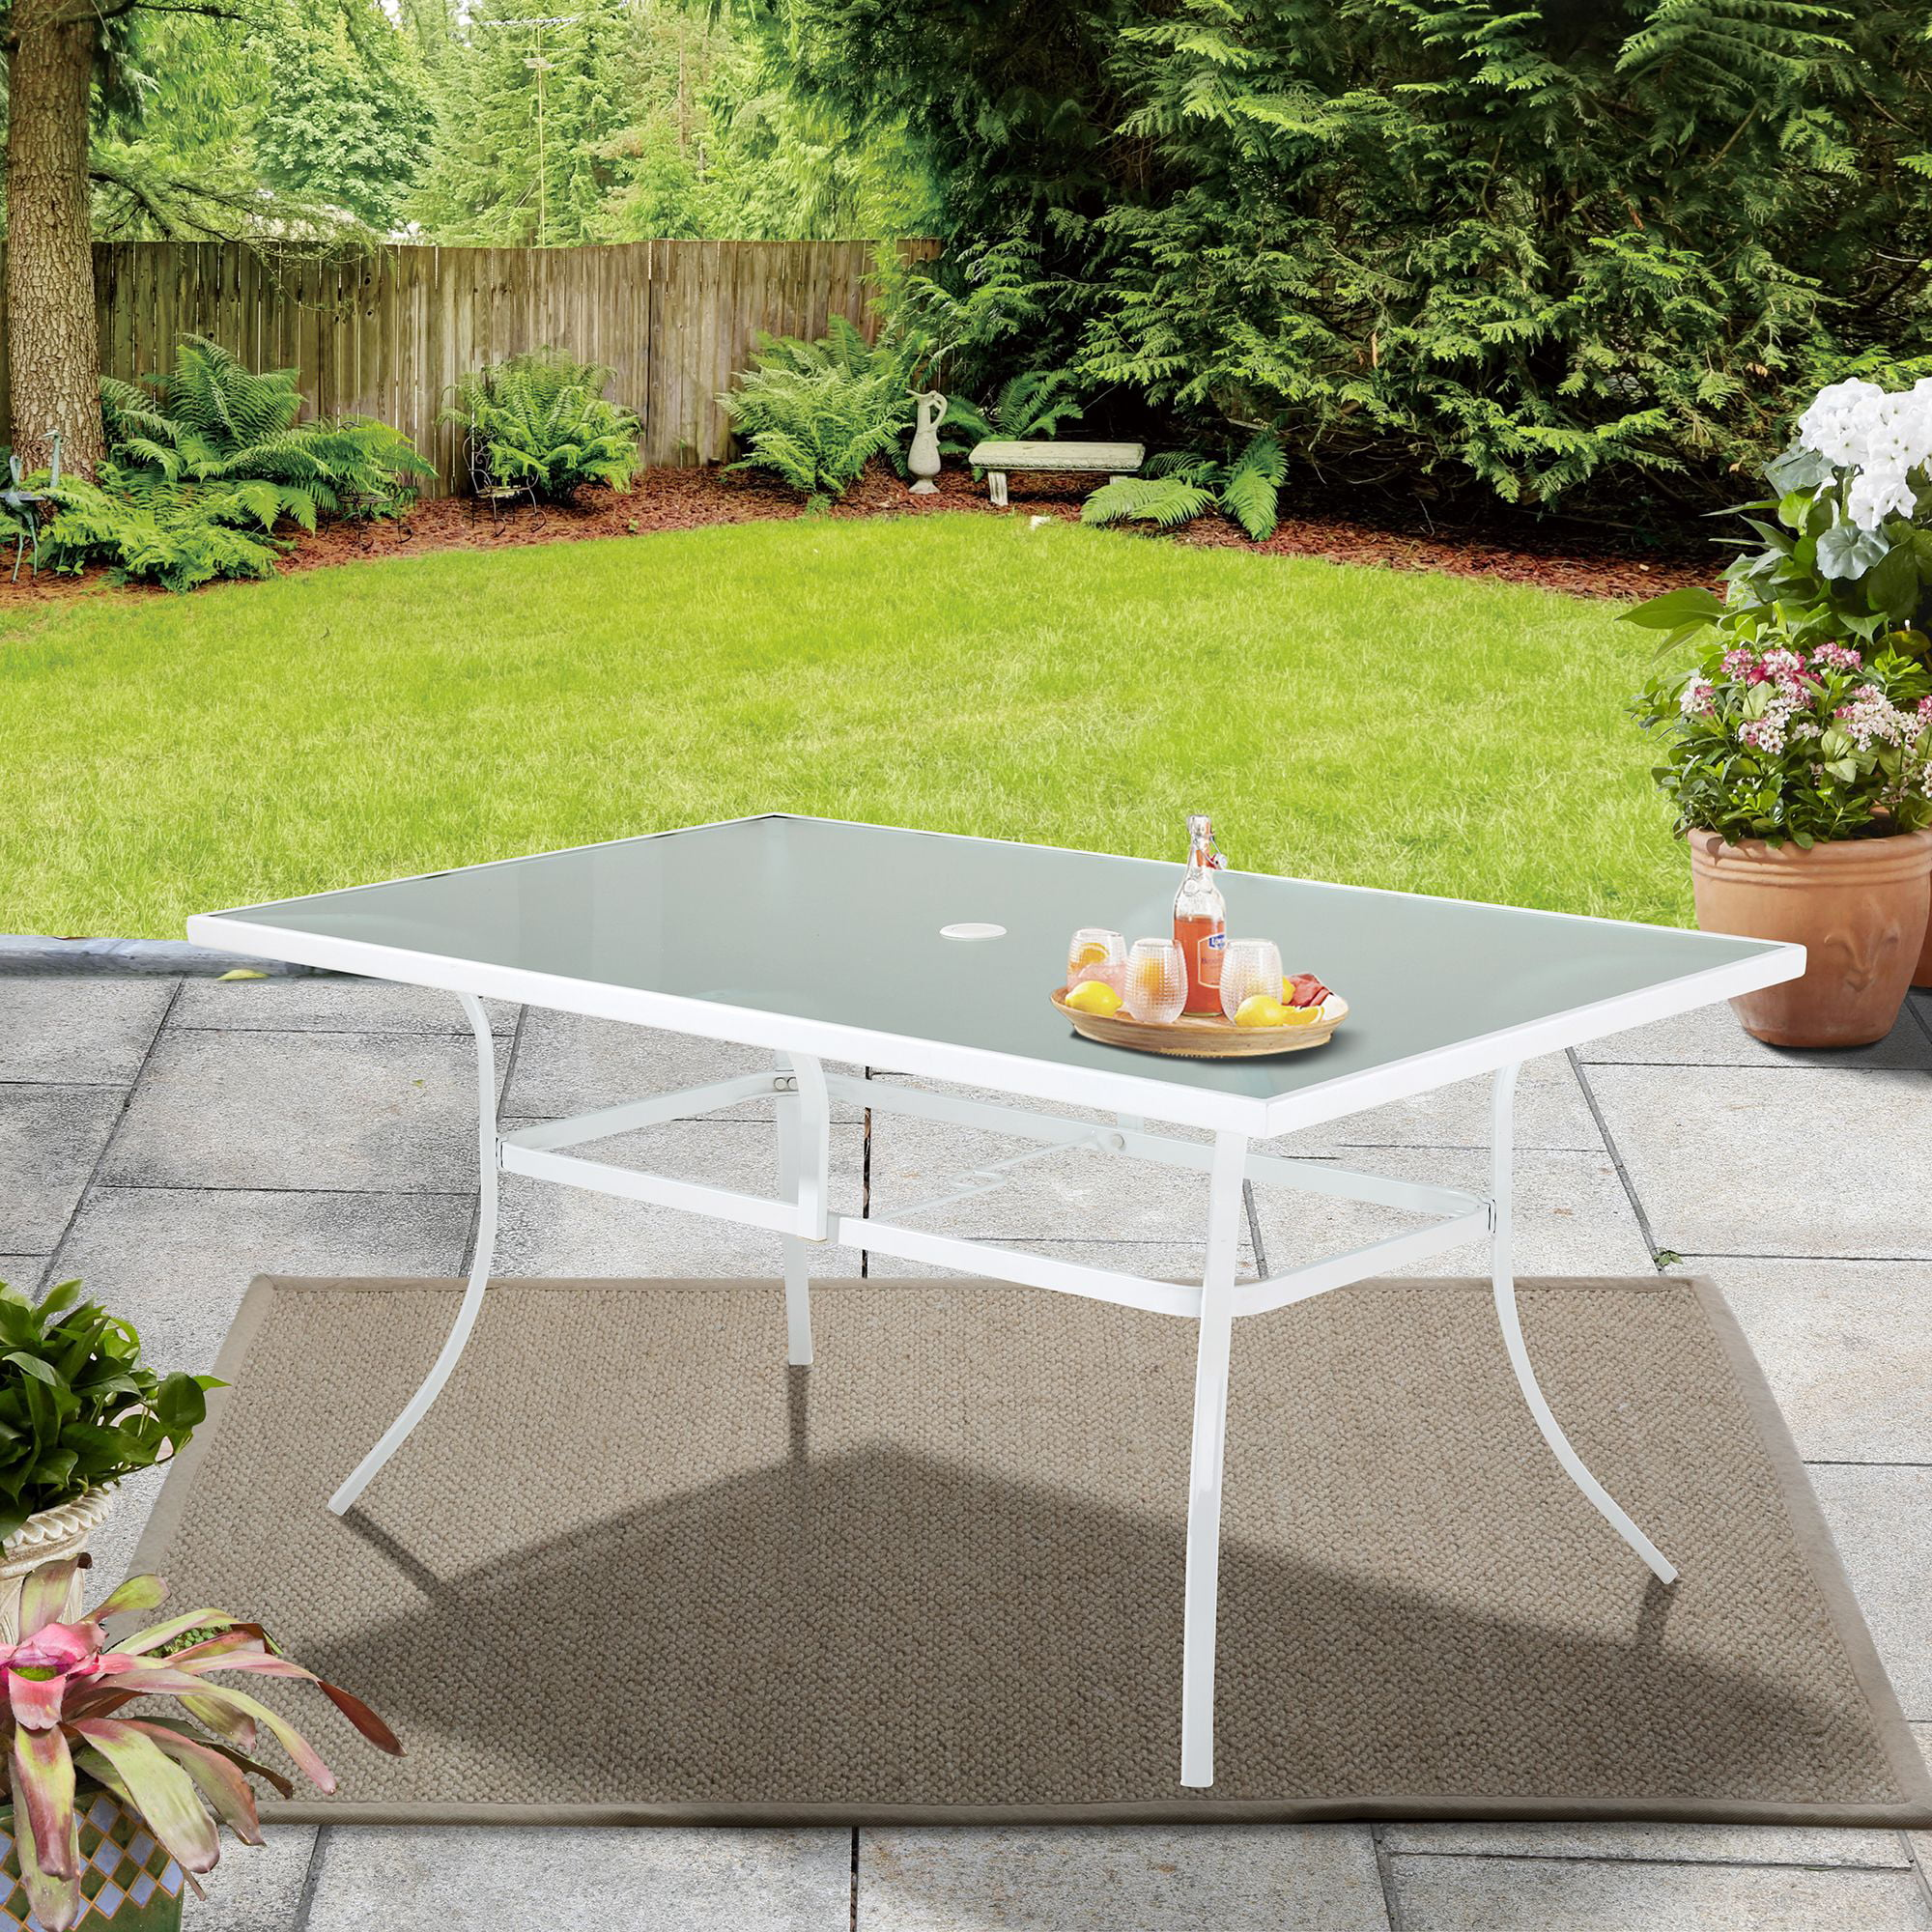 mainstays 60 rectangle glass top outdoor patio dining table white walmart com